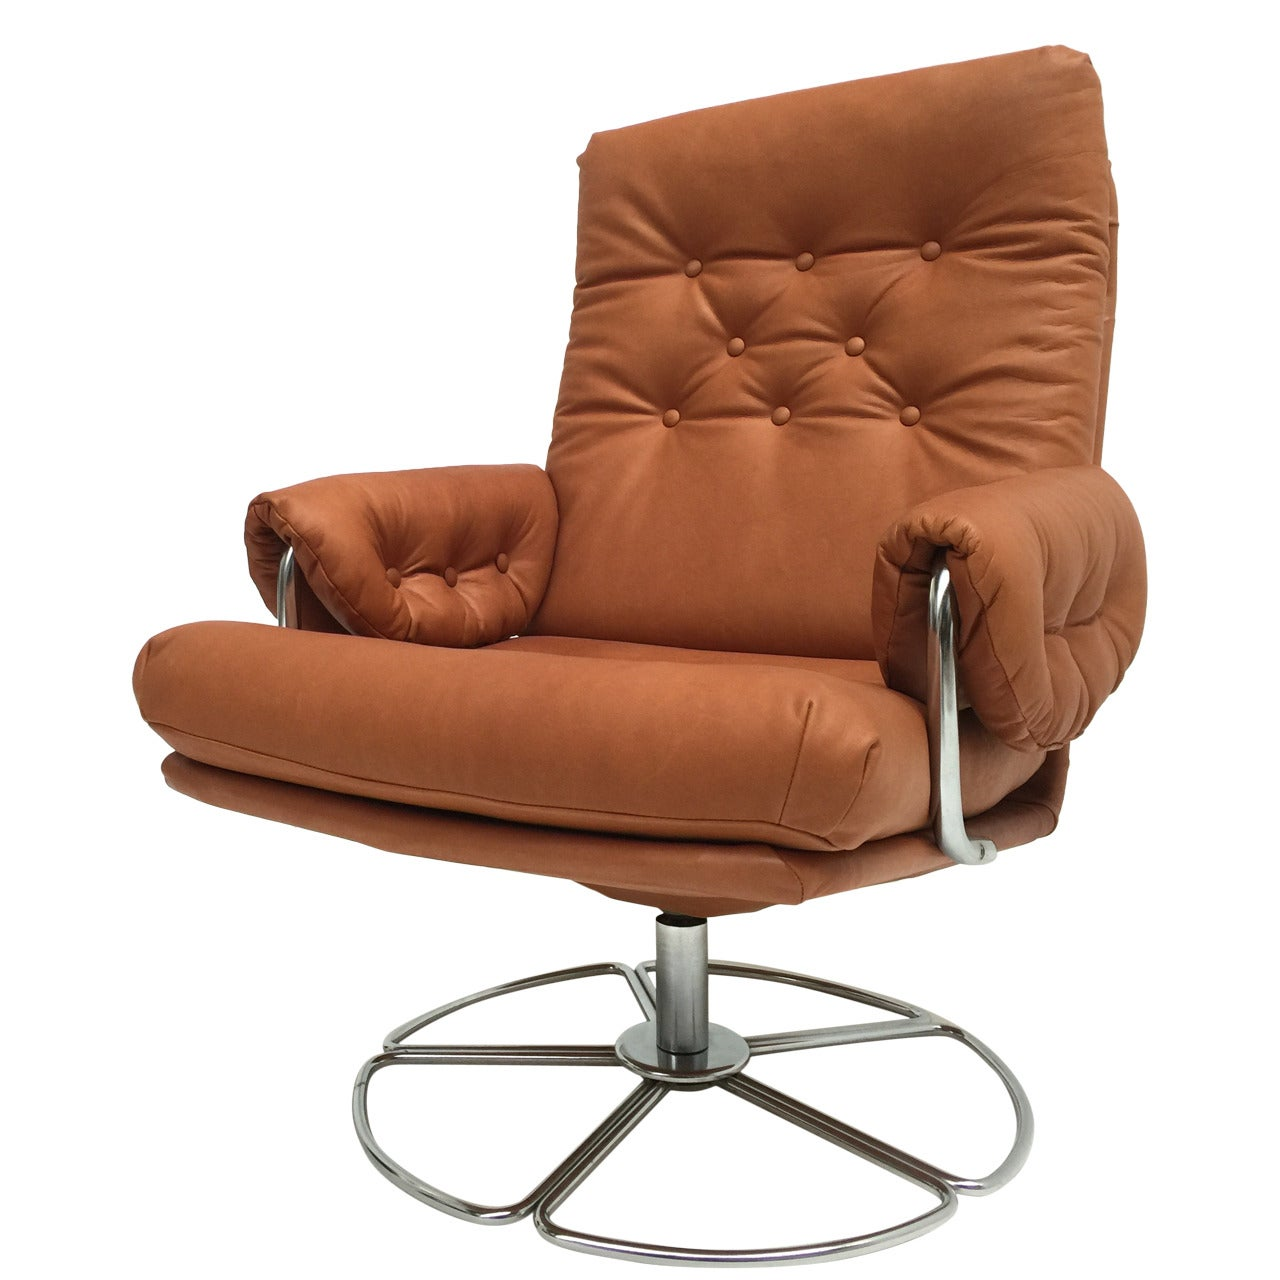 Rare Bruno Mathsson Leather and Chrome Swivel Easy Chair for Dux Sweden